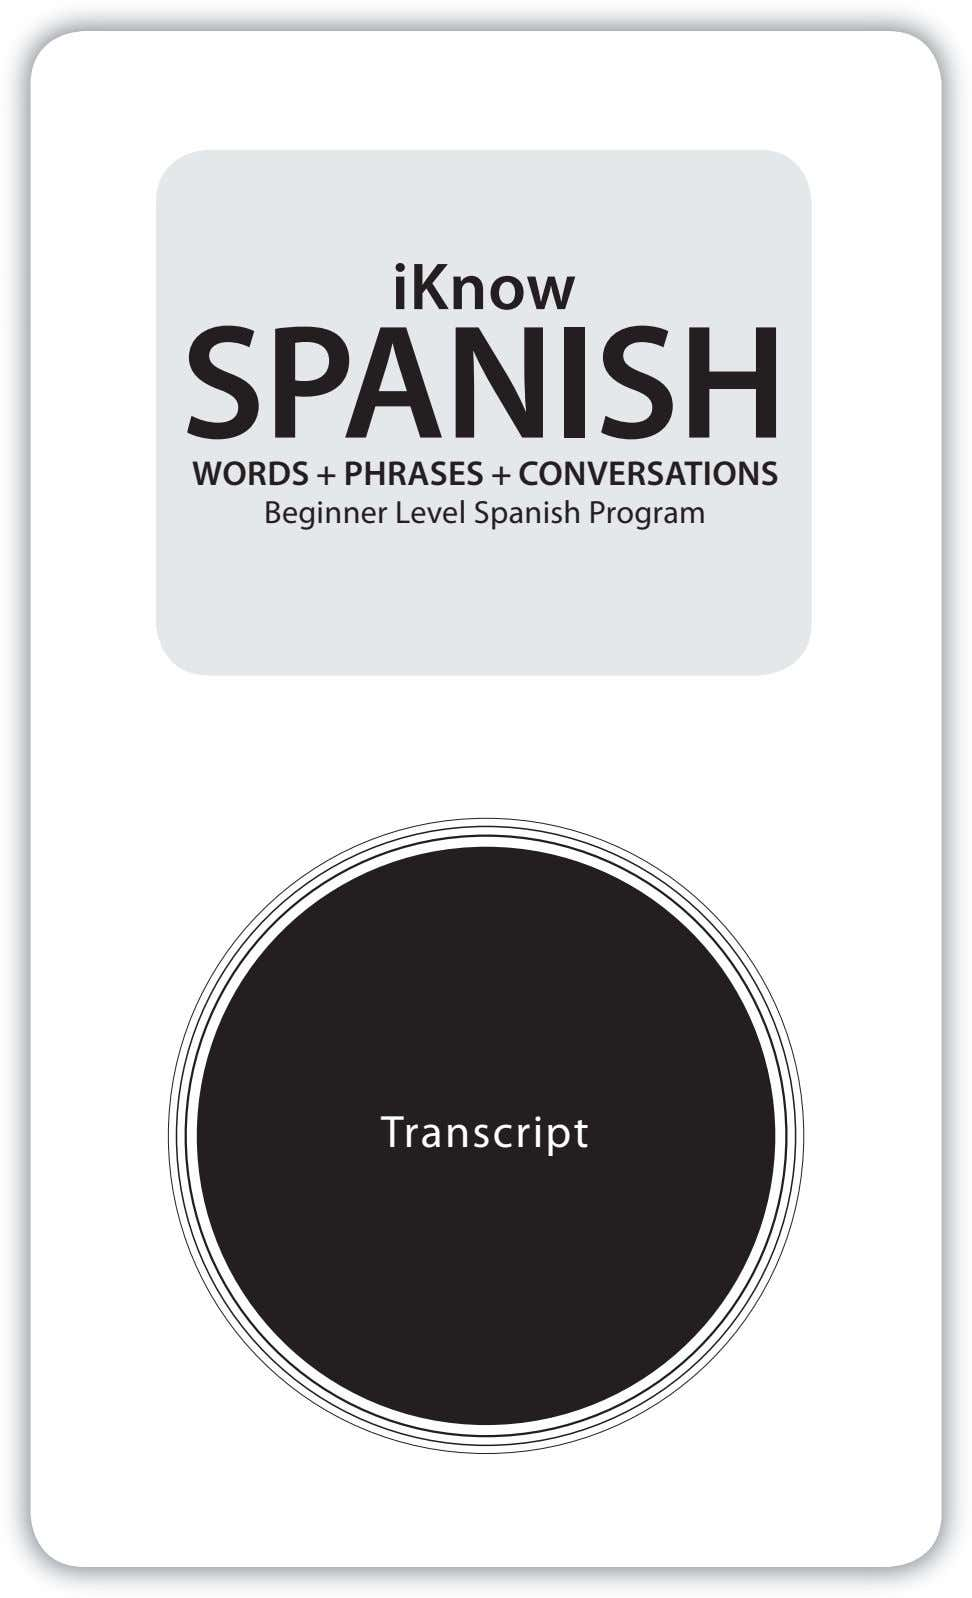 iKnow SPANISH WORDS + PHRASES + CONVERSATIONS Beginner Level Spanish Program Transcript